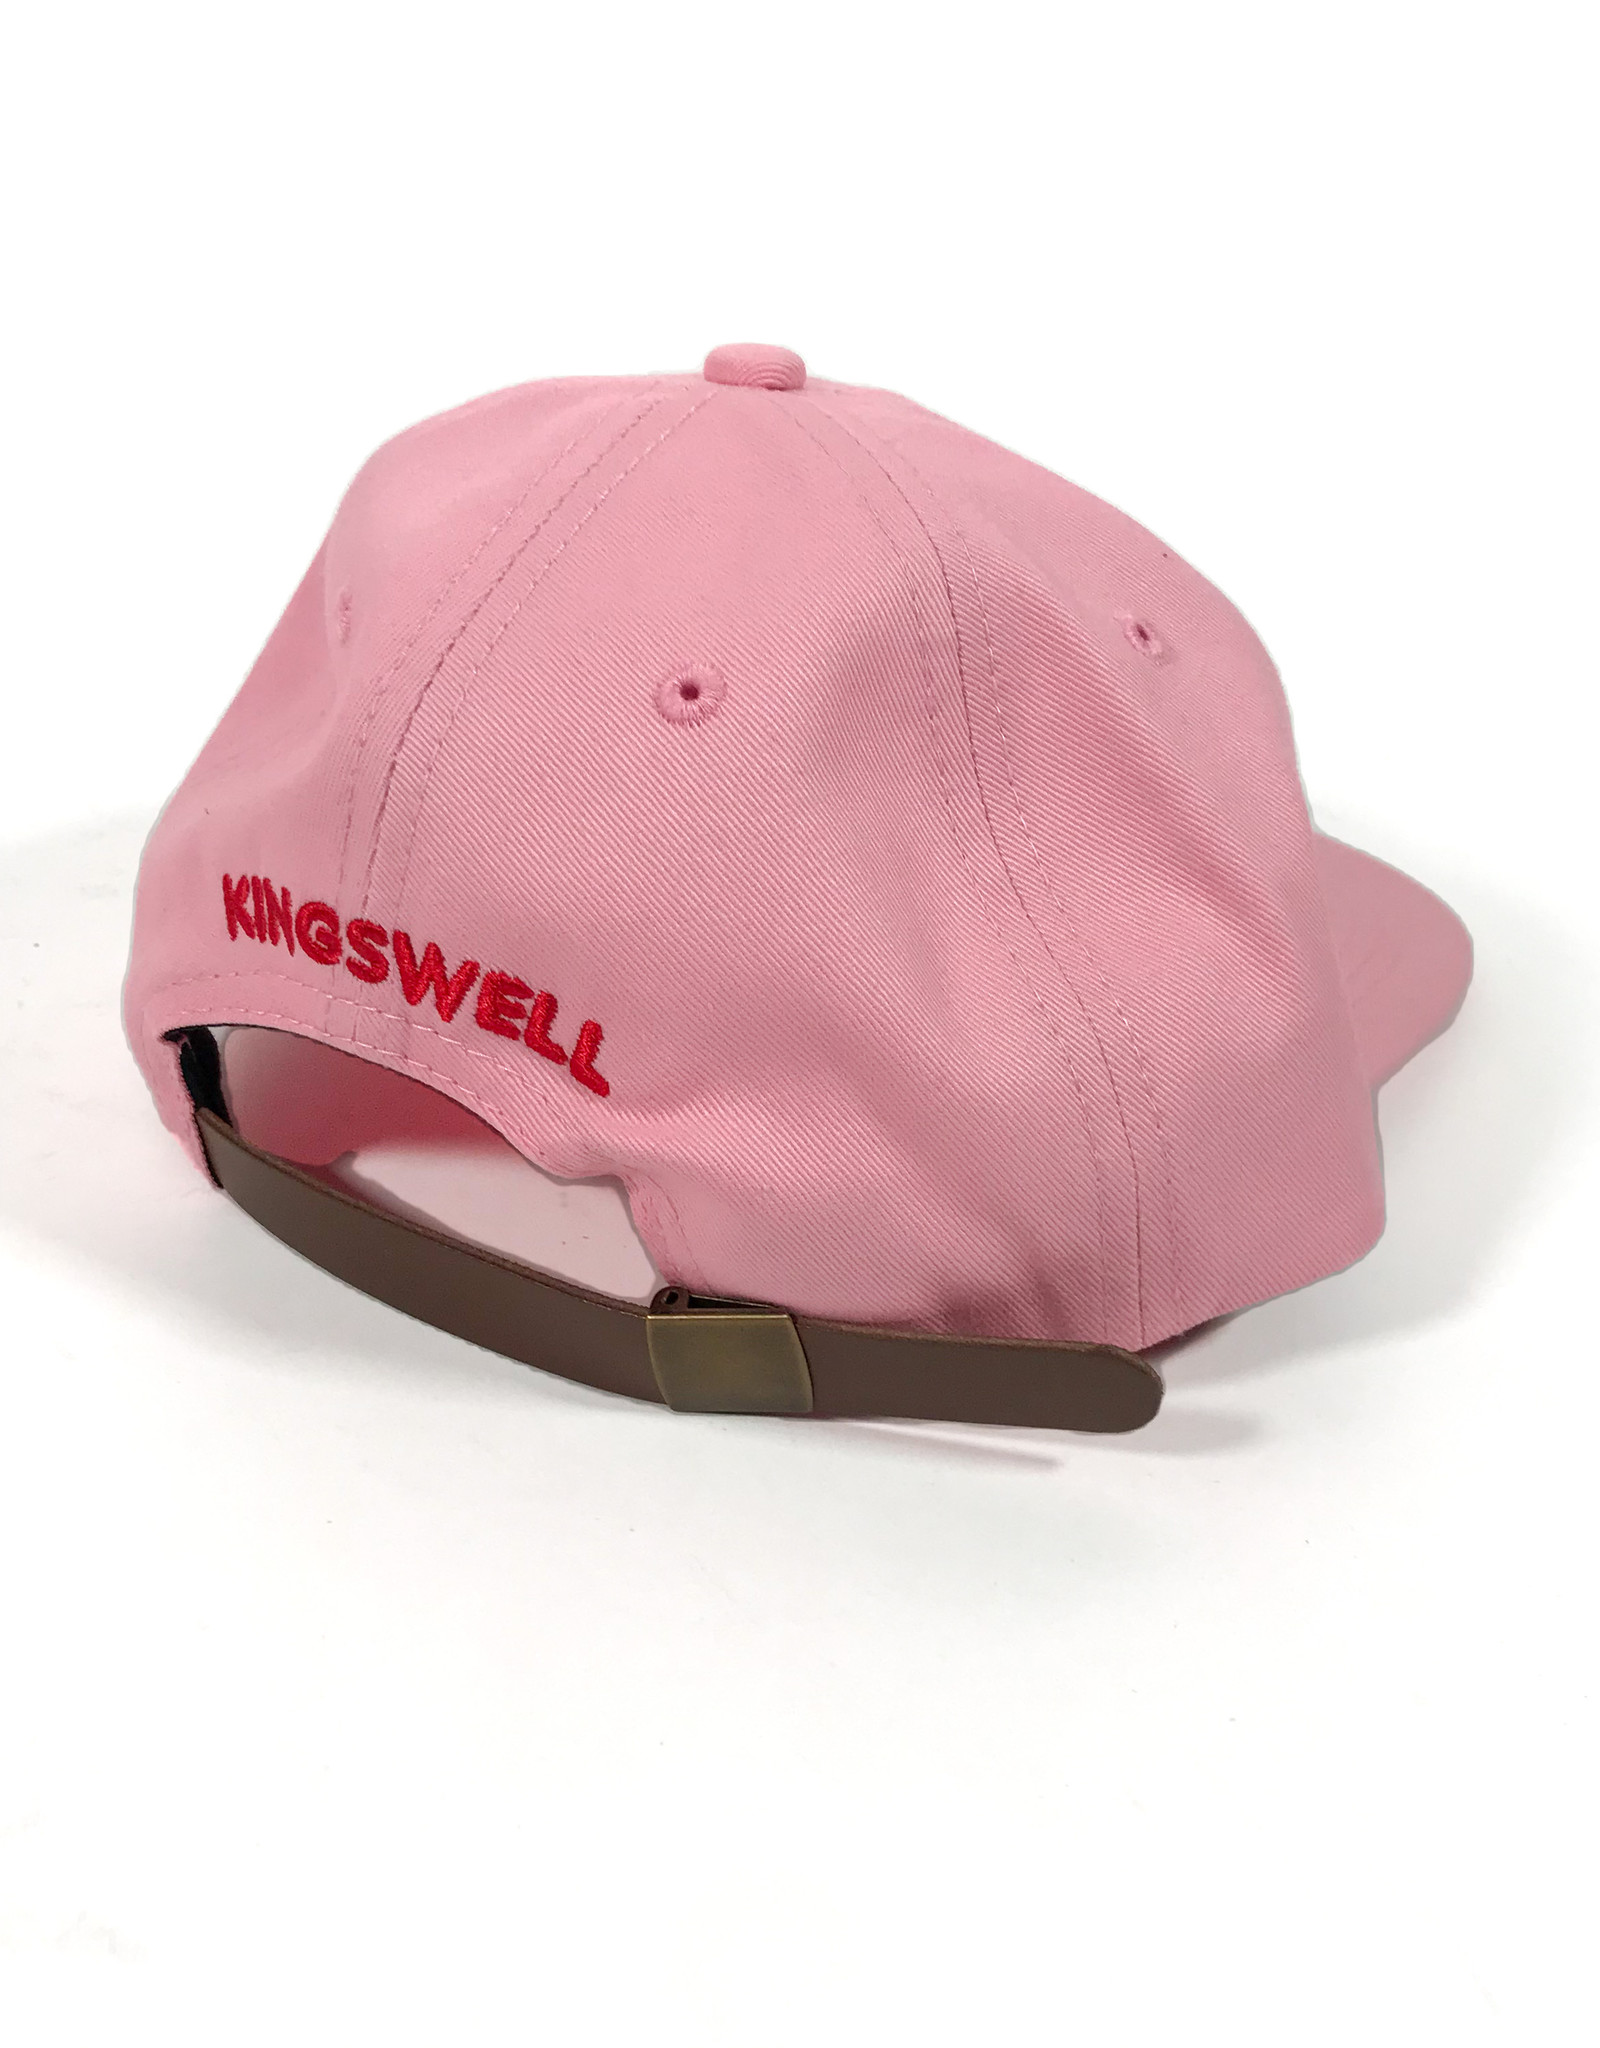 KINGSWELL KINGSWELL MOUSE RIPPER 6 PANEL HAT - PINK